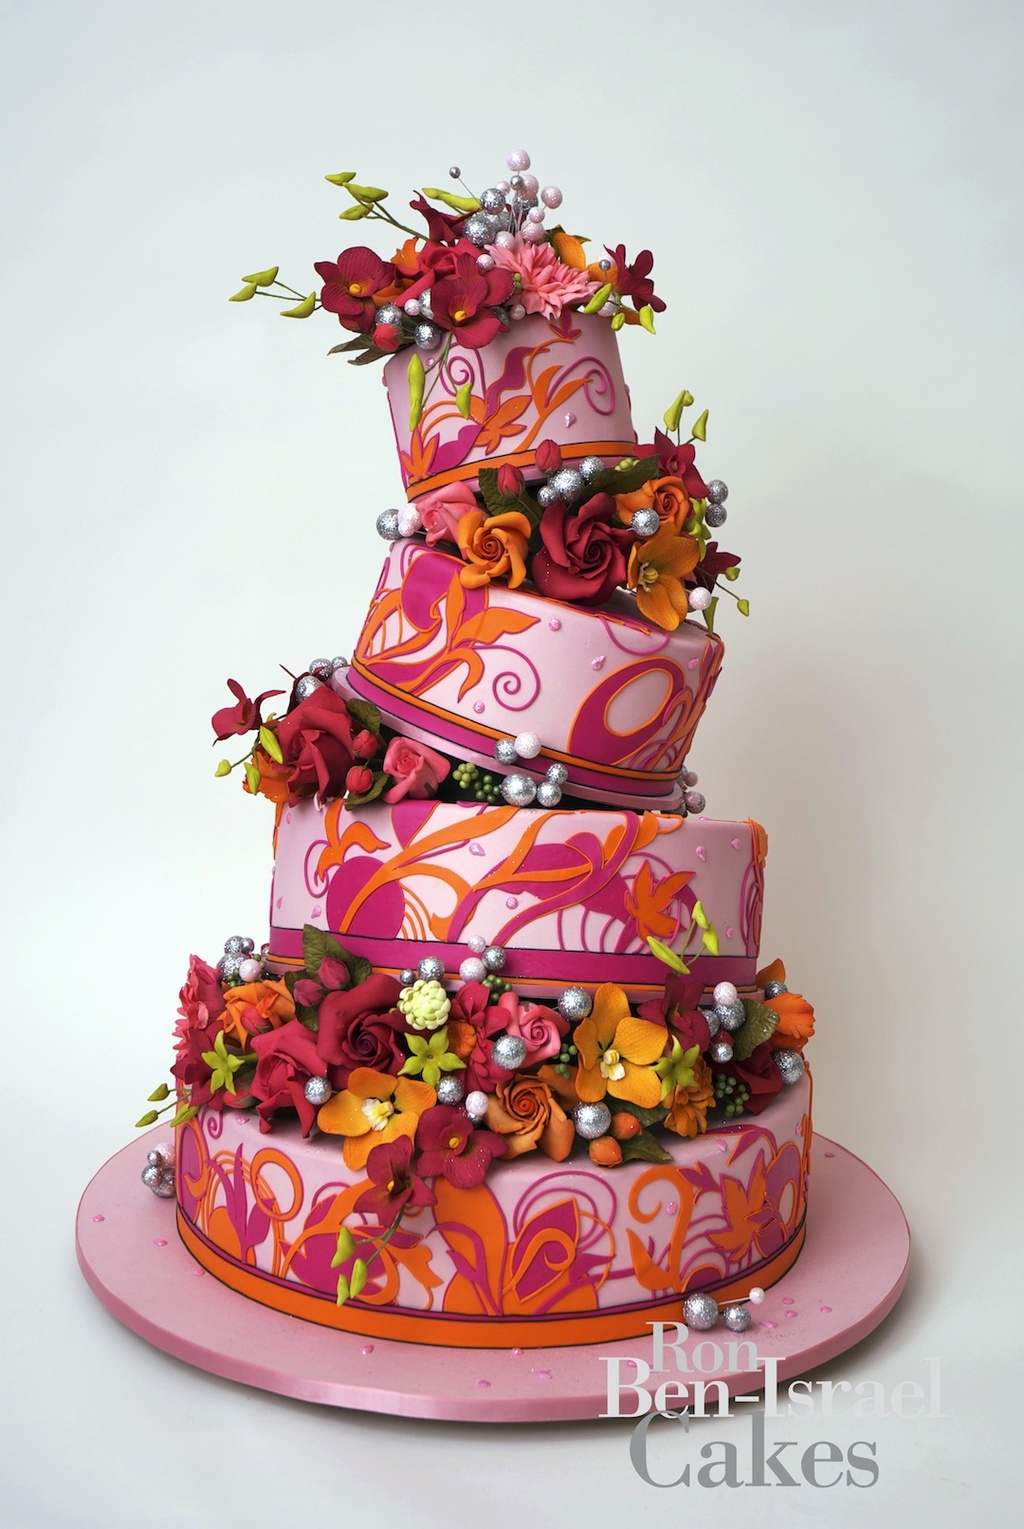 Wedding-cake-inspiration-ron-ben-isreal-wedding-cakes-pink-orange-funky-floral.full